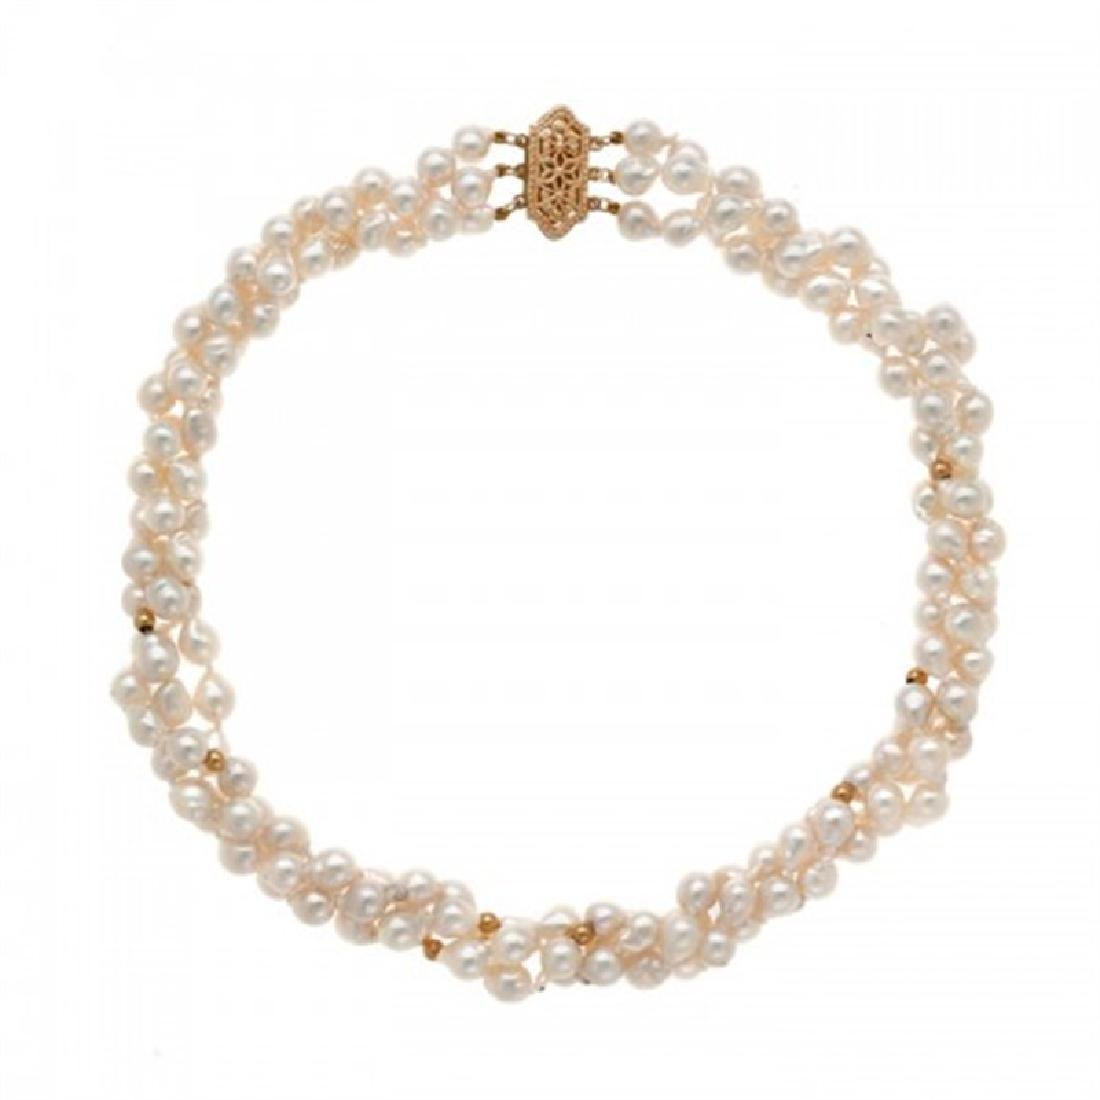 5.5-6.0mm Japanese Akoya Pearl Necklace